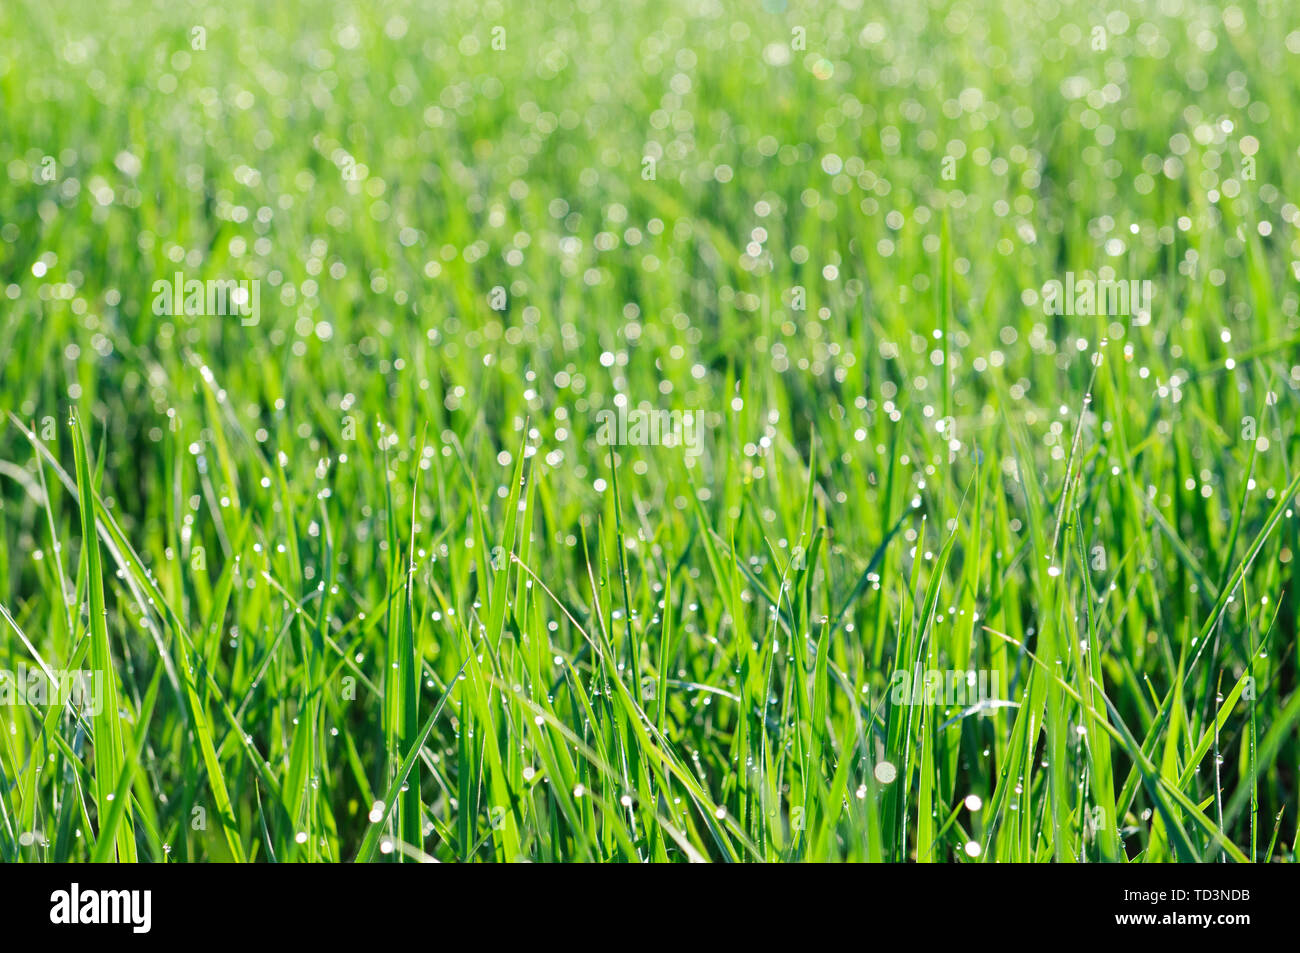 Dew grass background, low depth of field - Stock Image